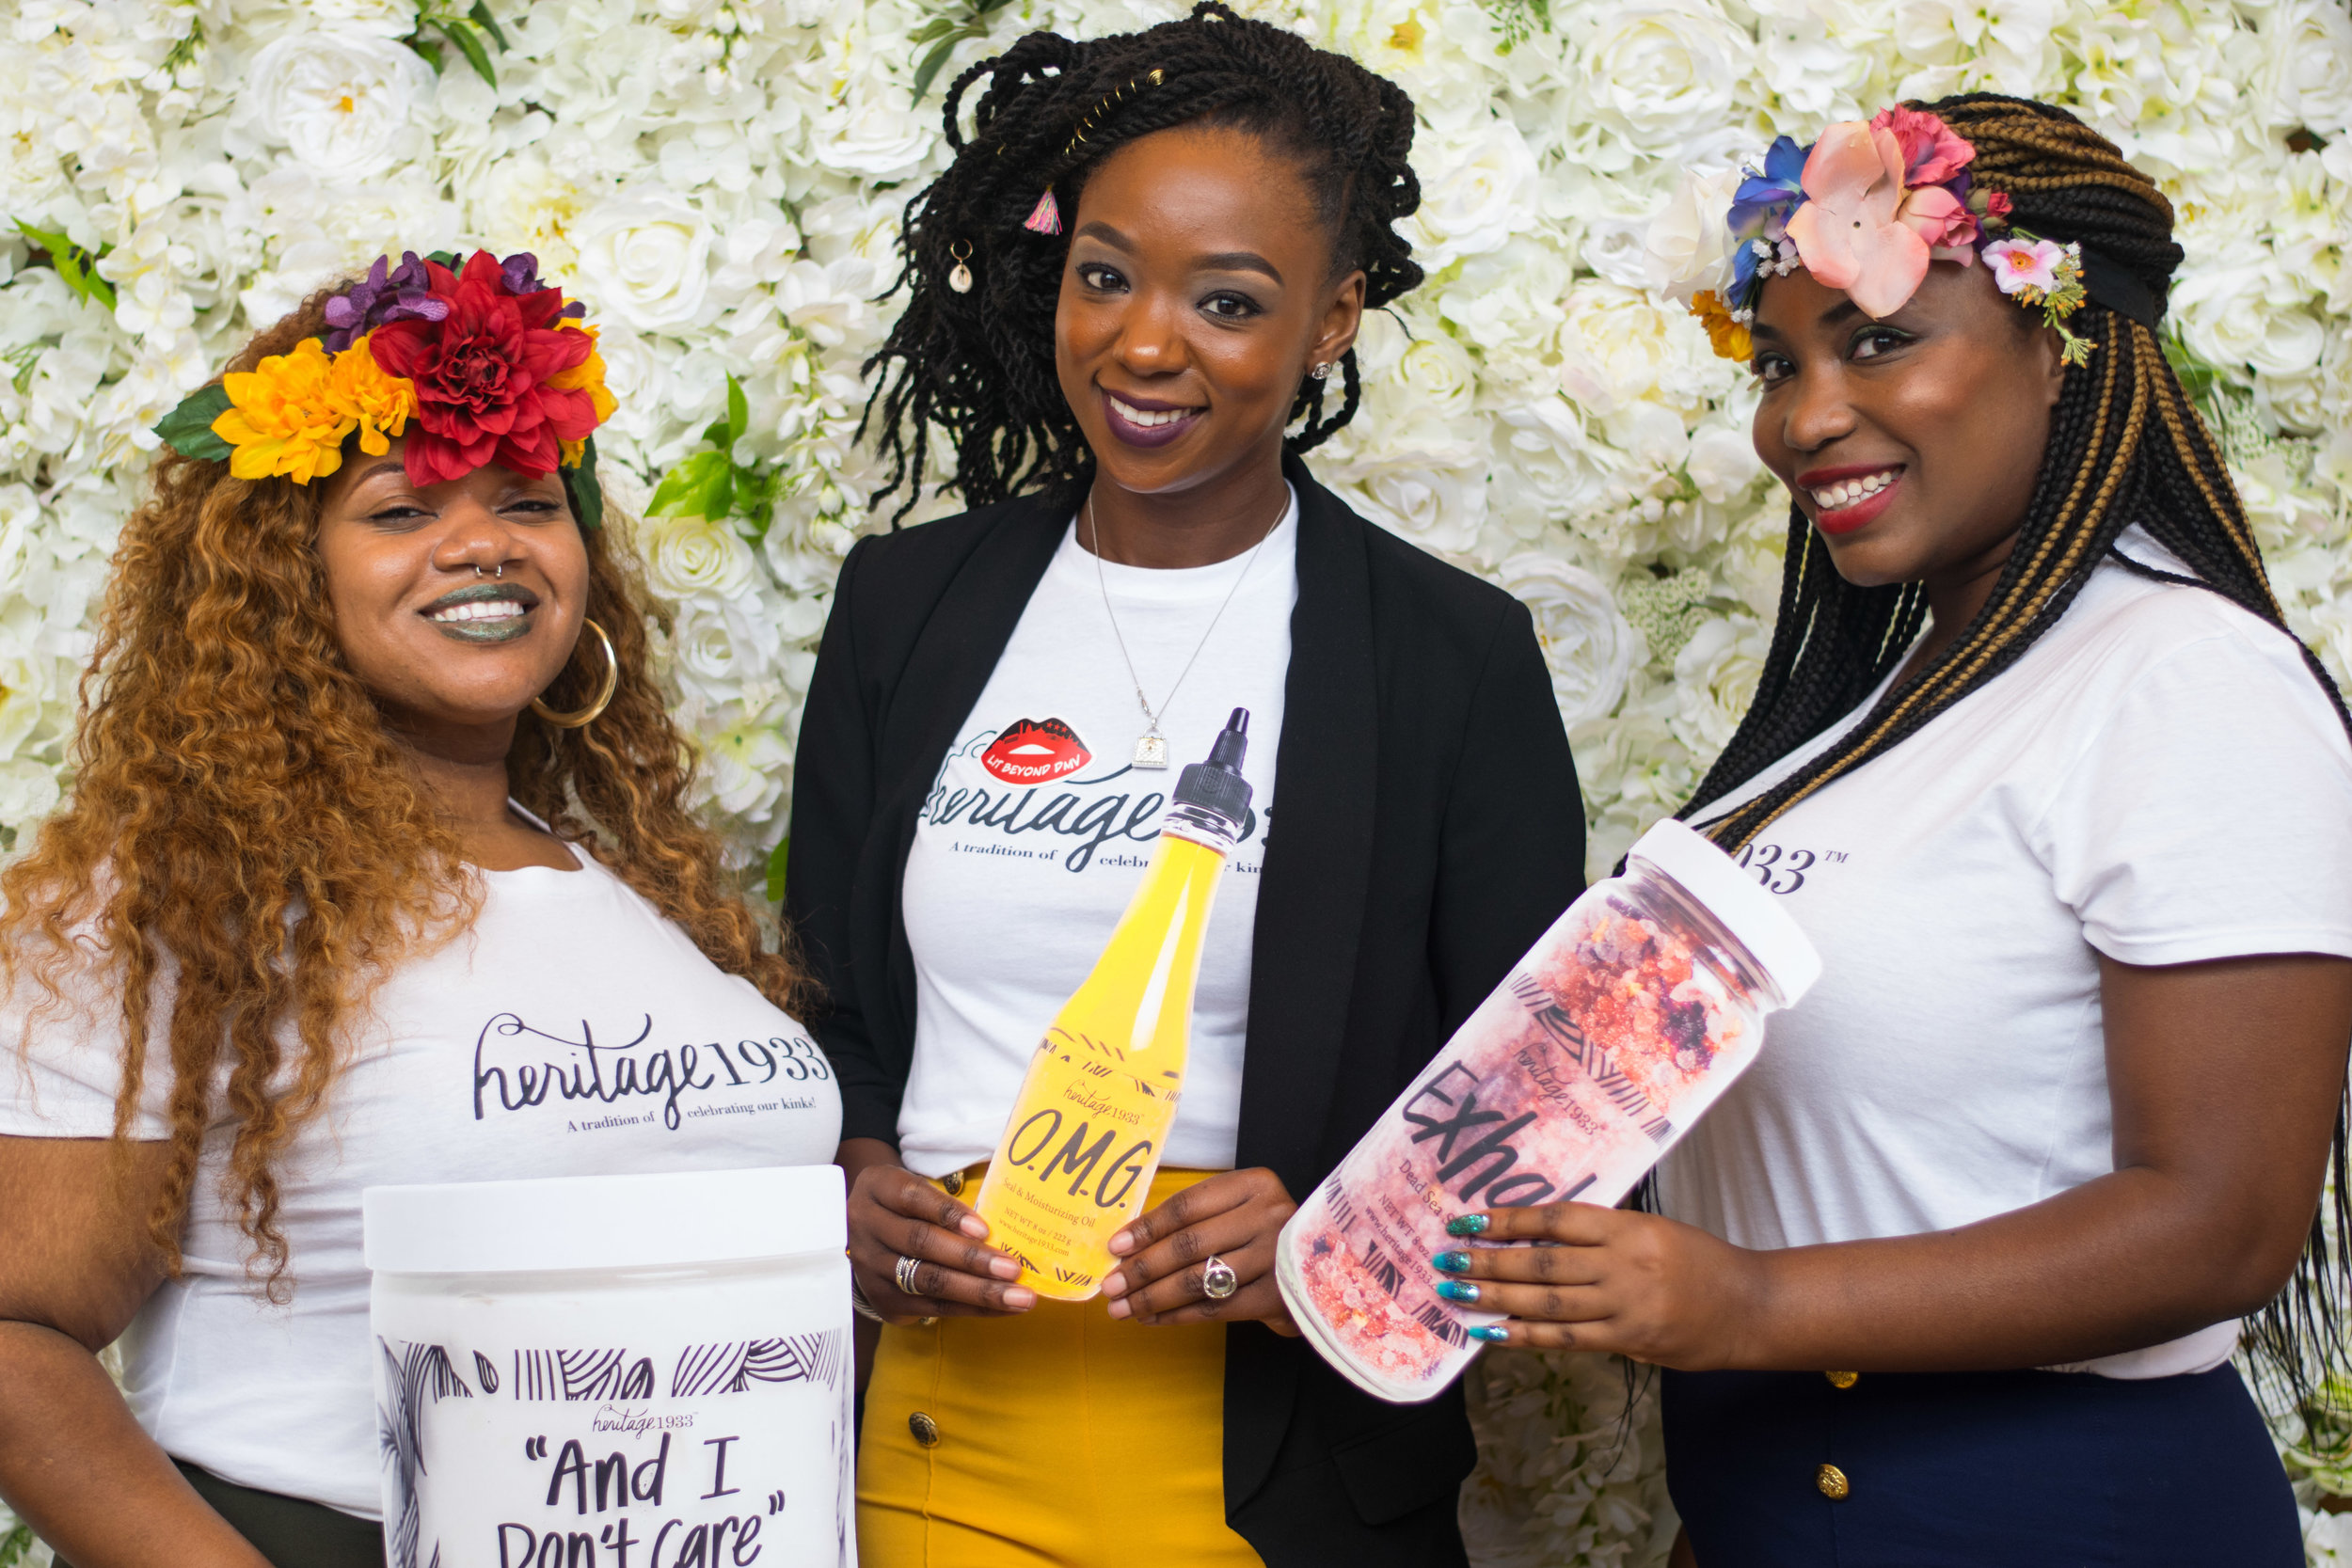 Latoya Thompson, middle, takes a photo with her company team at The Naturalista Hair Show on Saturday, Sept. 16, 2017. Based out of St. Louis, Missouri, Heritage1933 is a beauty and hair care company with a social purpose. For every product sold, Heritage1933 will donate a hair product to a shelter in need.